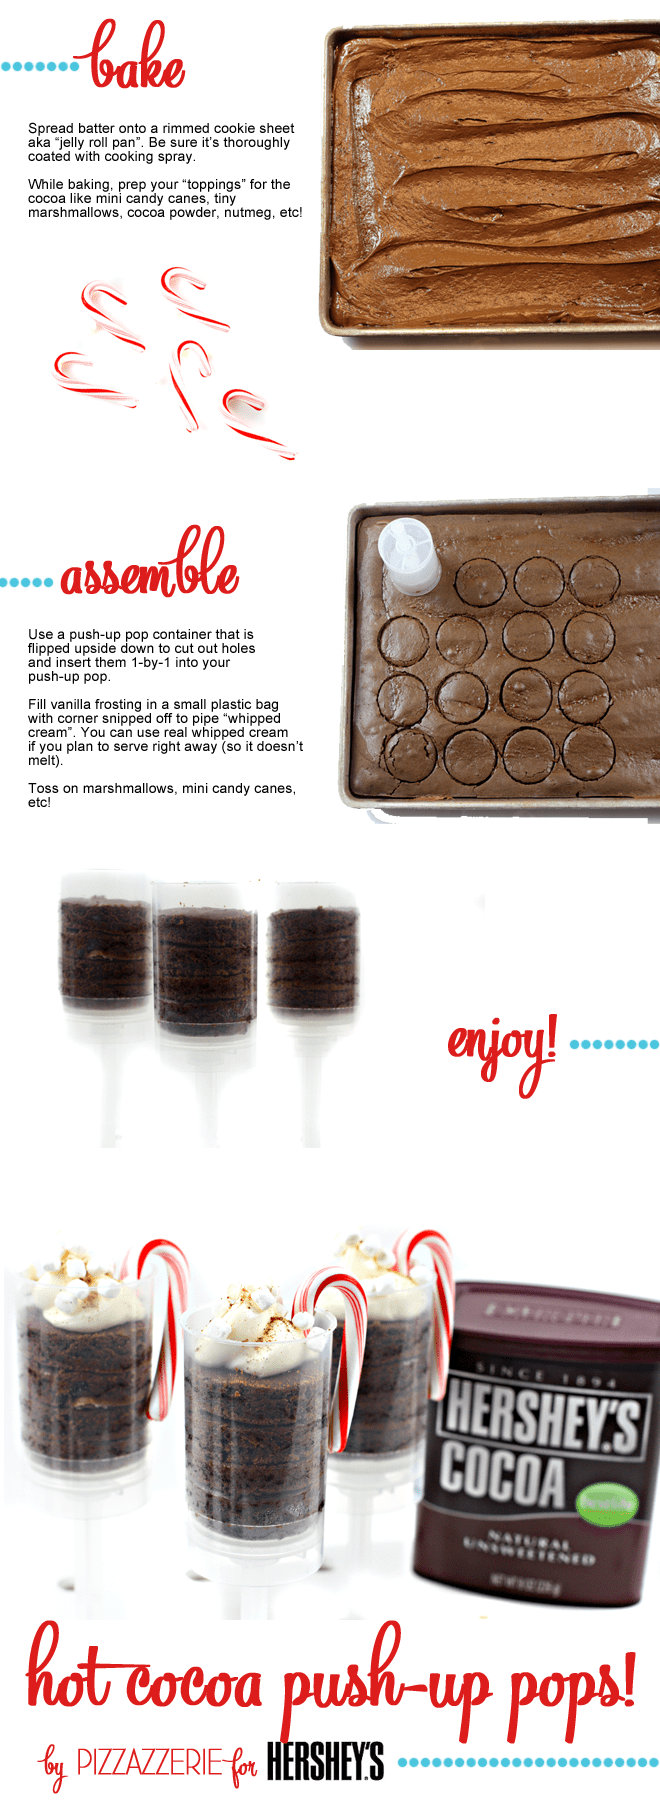 Hershey's Hot Cocoa Push-Up Pops by Pizzazzerie!